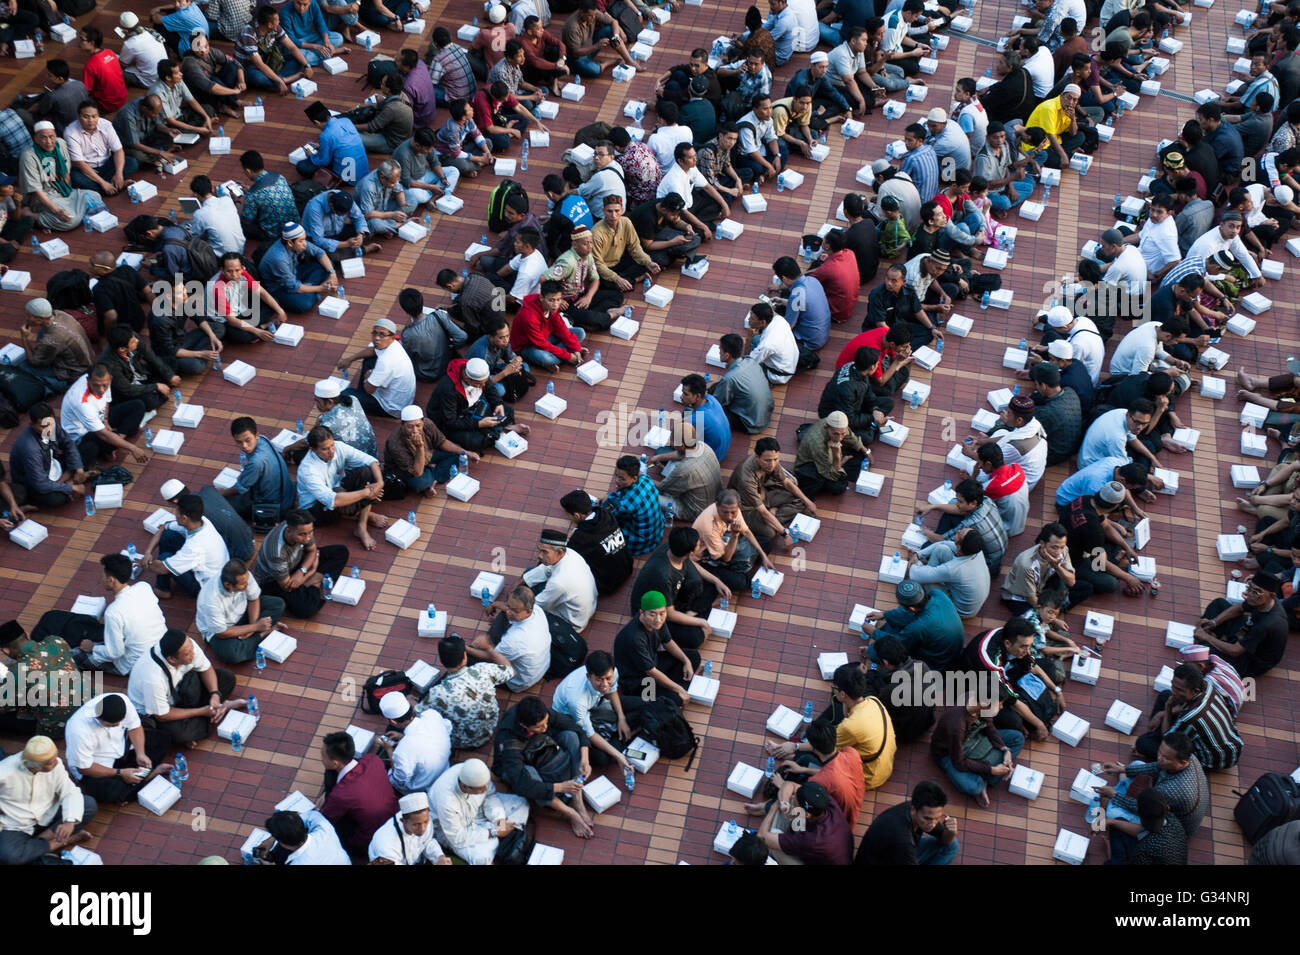 Jakarta, Indonesia. 8th June, 2016. Indonesian Moslems gather and sit in rows while waiting Iftar meal time at the - Stock Image